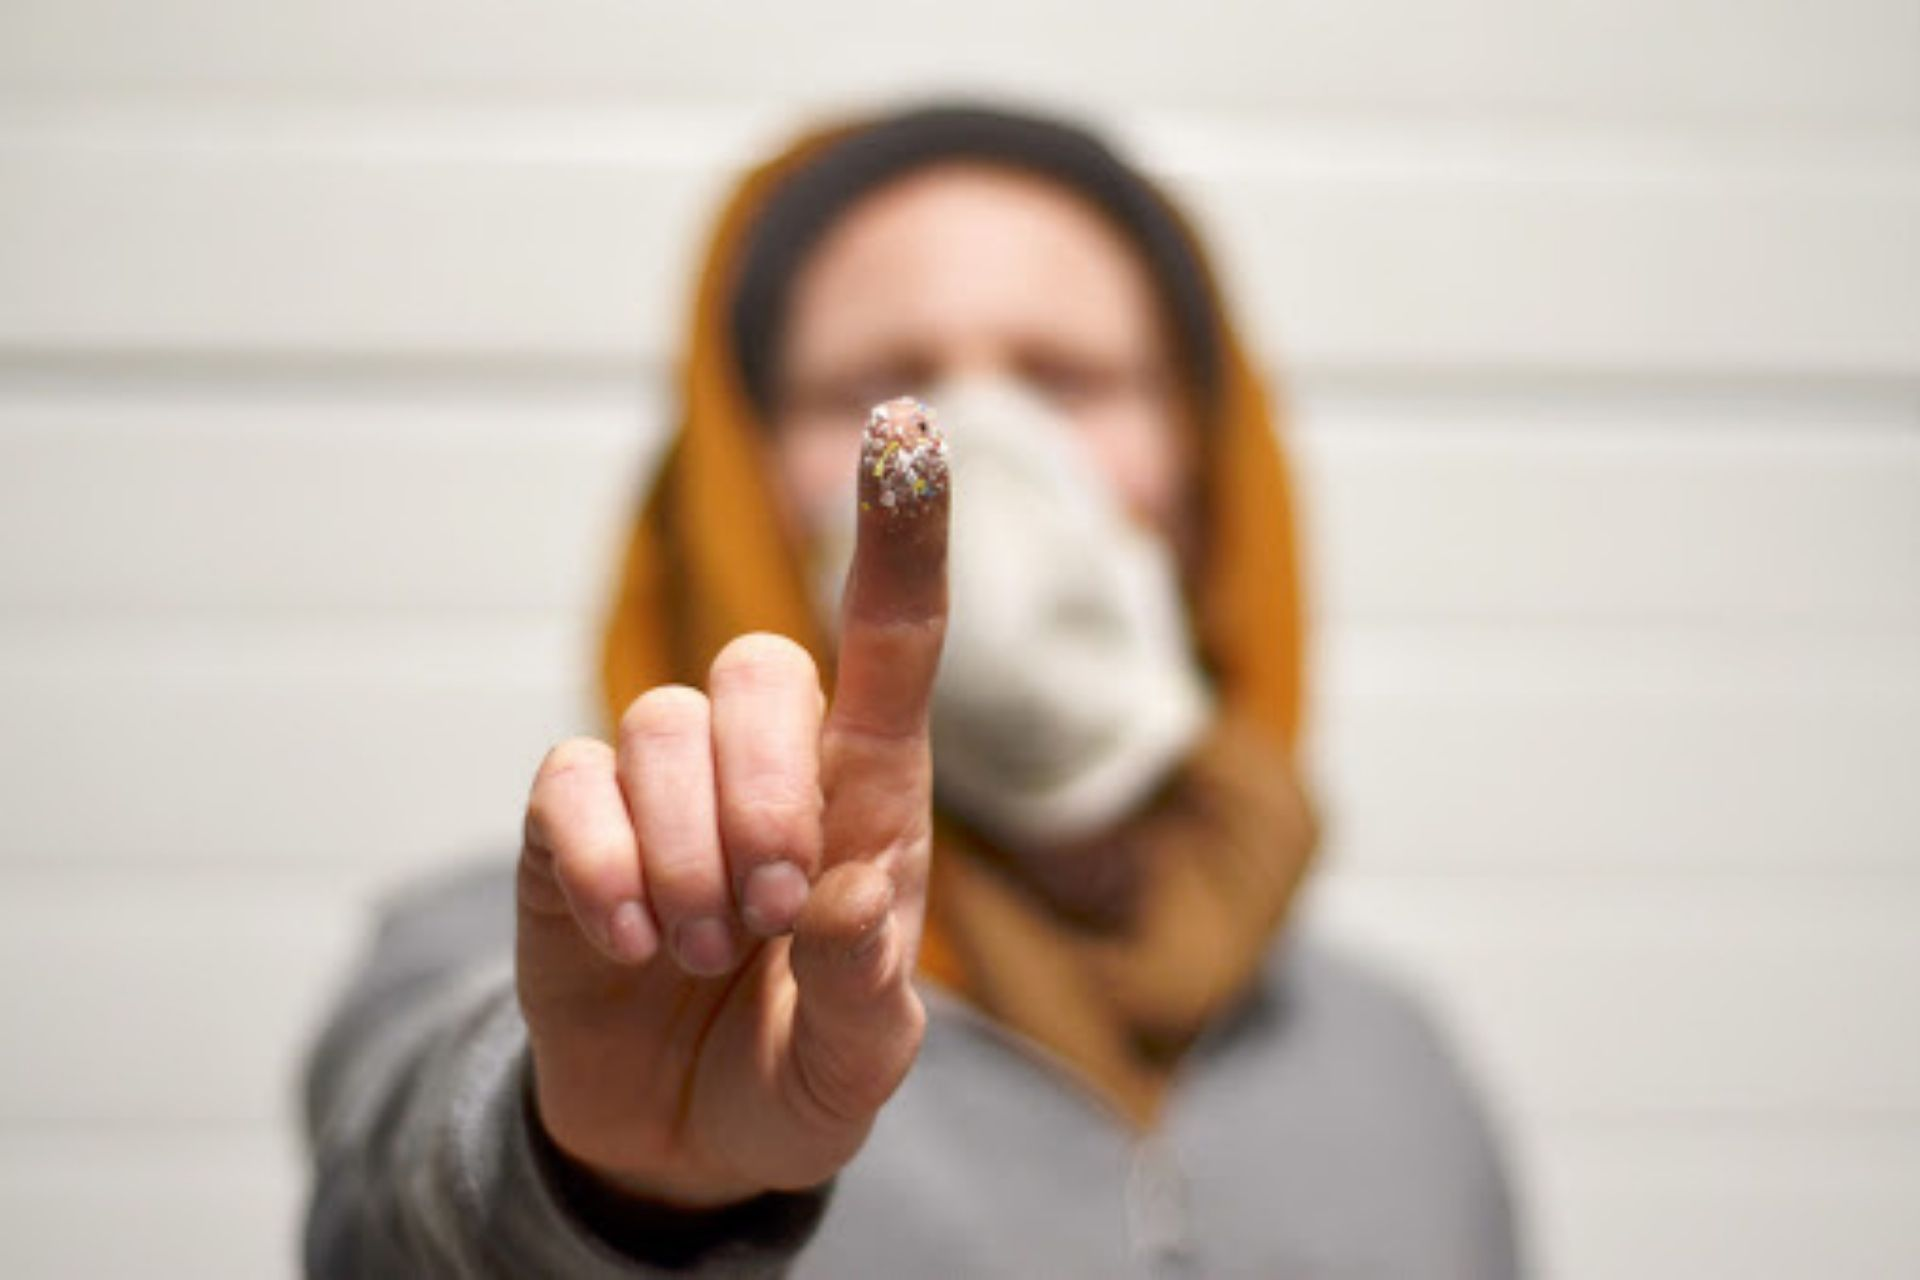 Man showing a microplastic on his finger